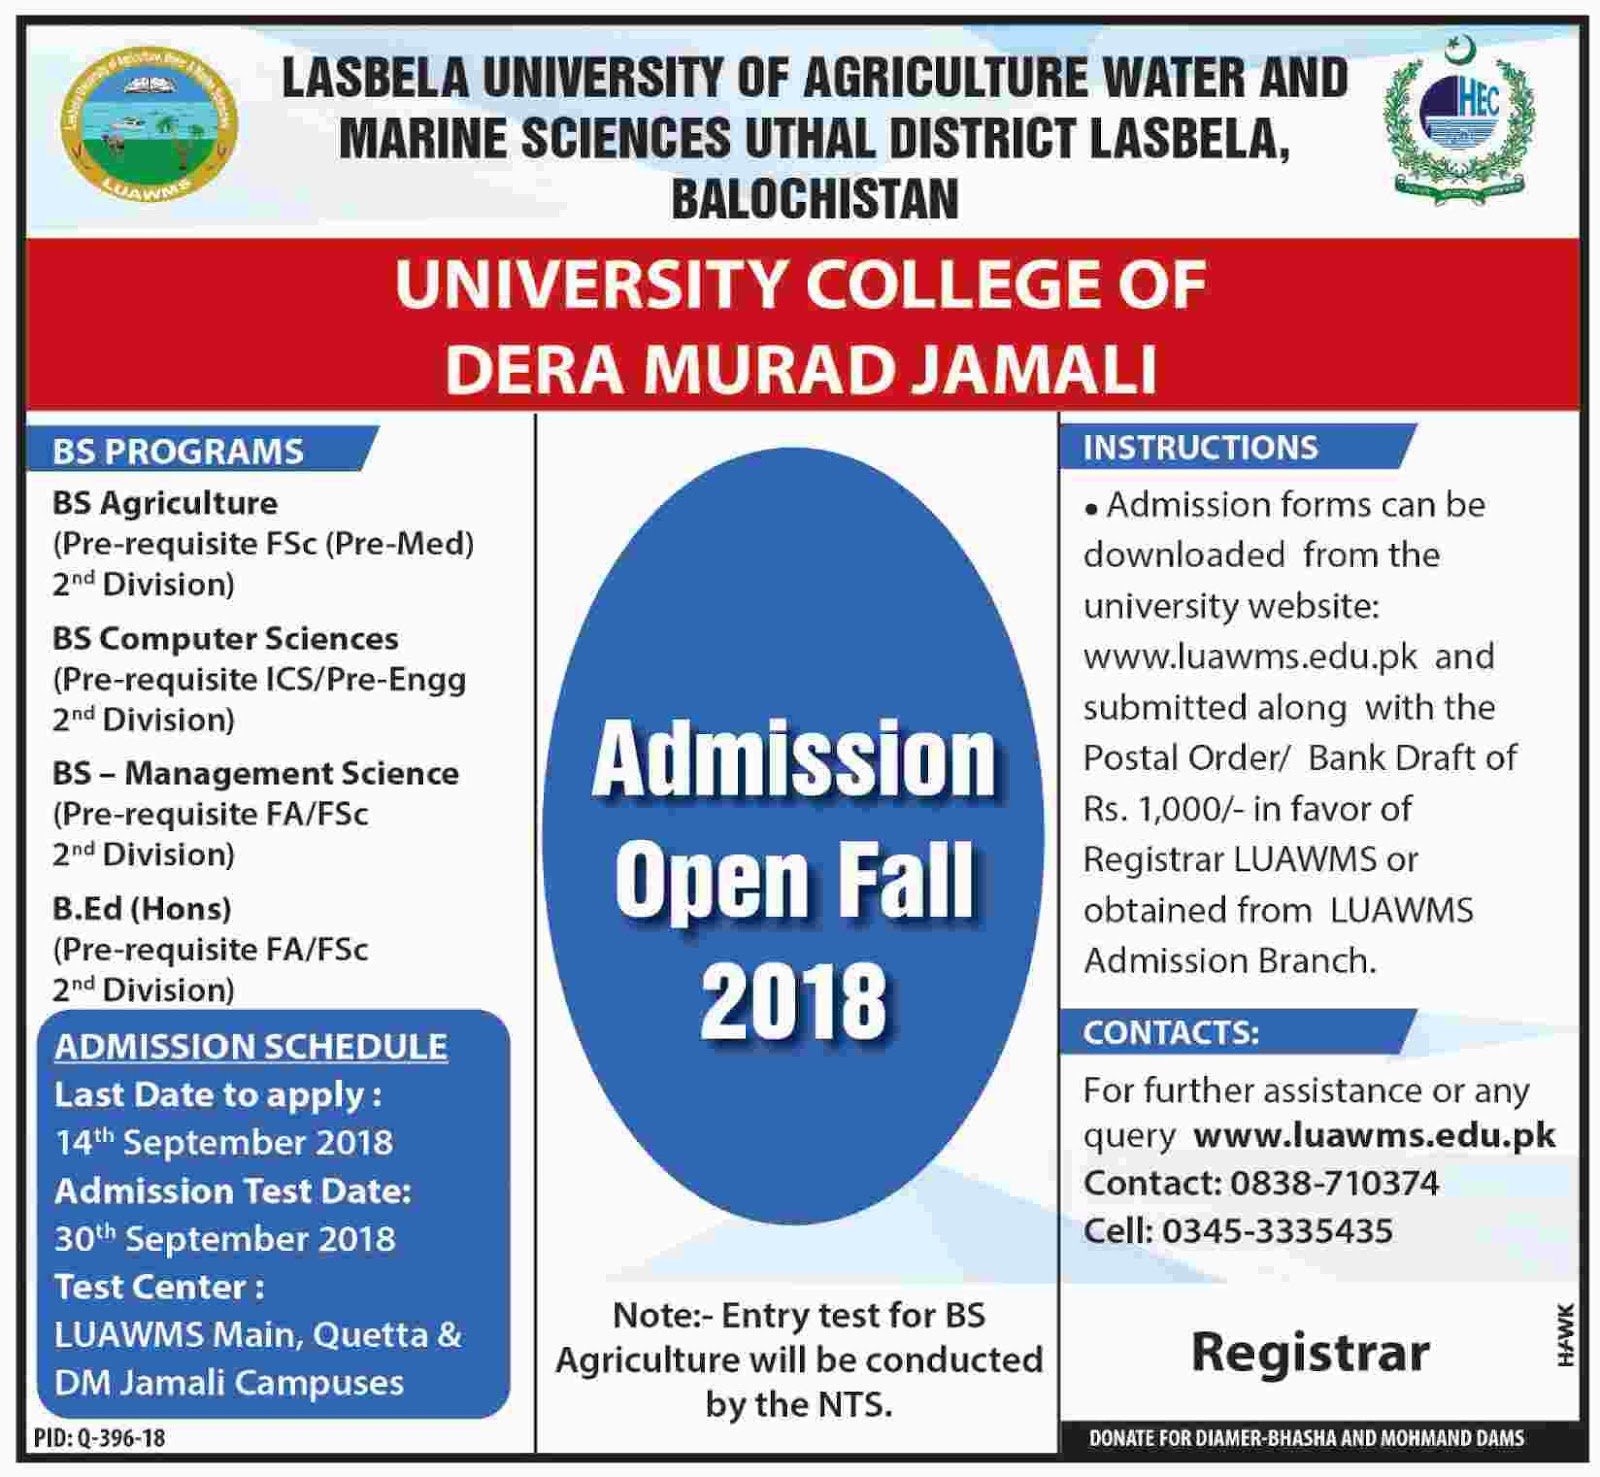 Admissions Open For Fall 2018 At LUAWMS Lasbela, Khuzdar and Dera Murad Jamali Campus